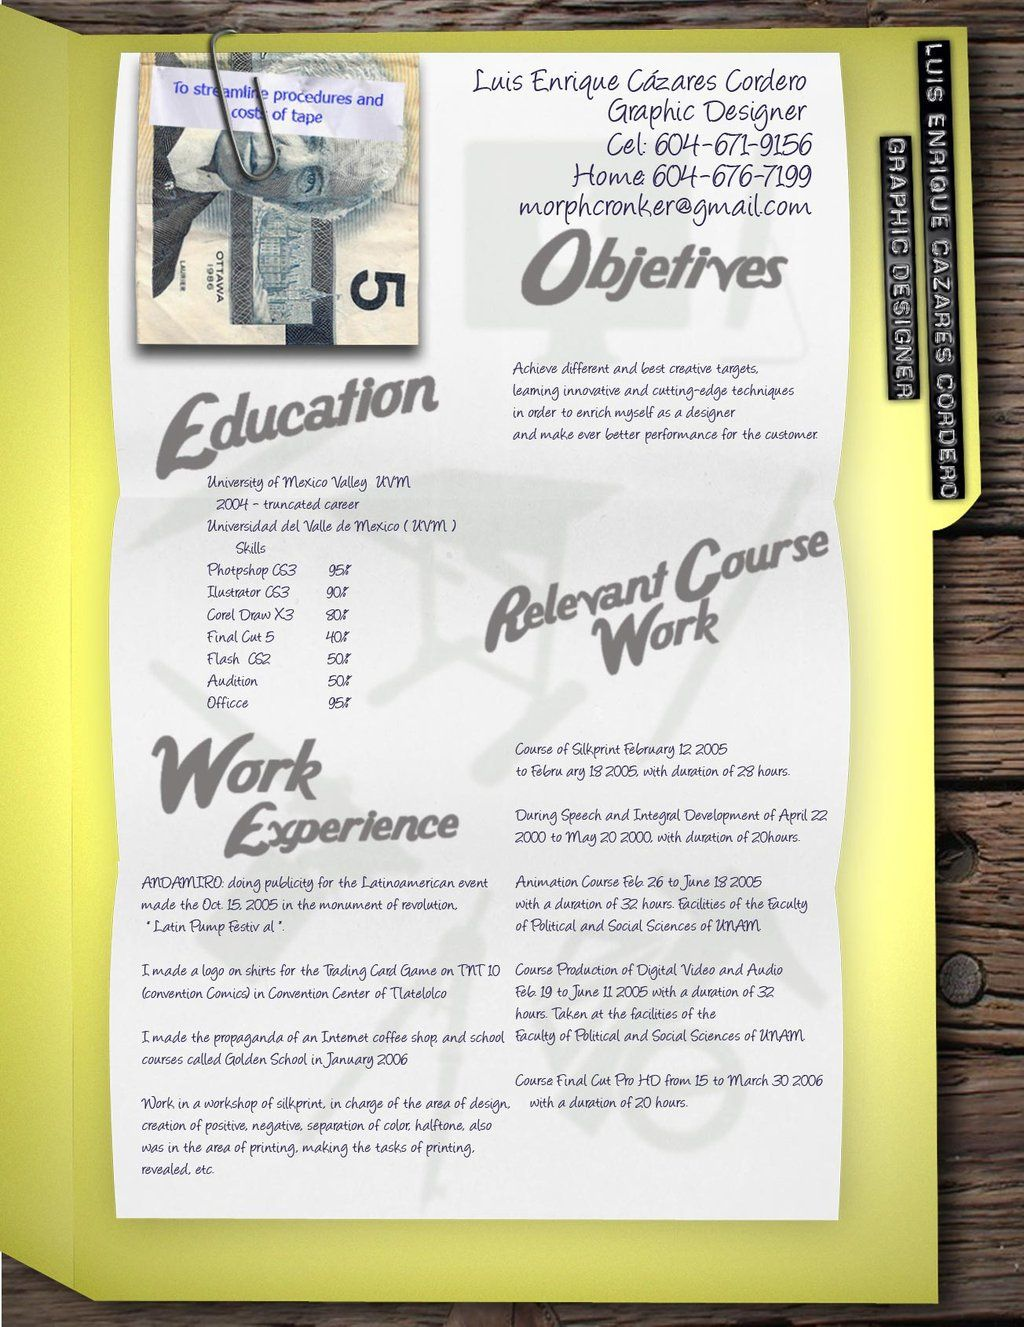 free resume templates download for freshers | latest resume ... - Free Resume Builder Template Download